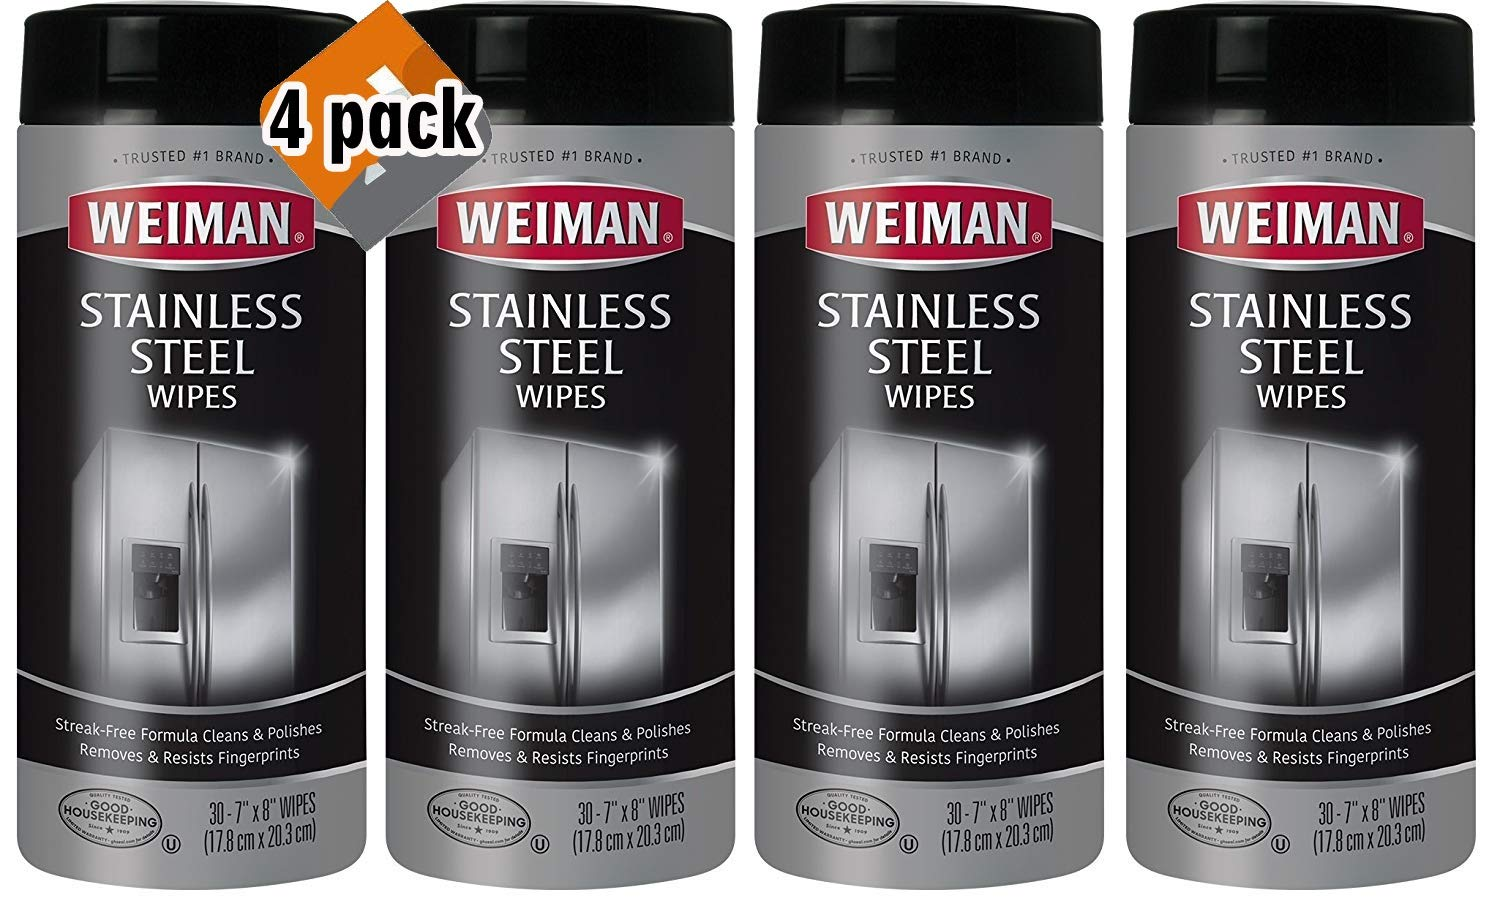 Weiman Stainless Steel Wipes - 4 Pack - Removes Fingerprints, Residue, Water Marks and Grease From Appliances - Works Great on Refrigerators, Dishwashers, Ovens and More - 30 Count, Case of 4